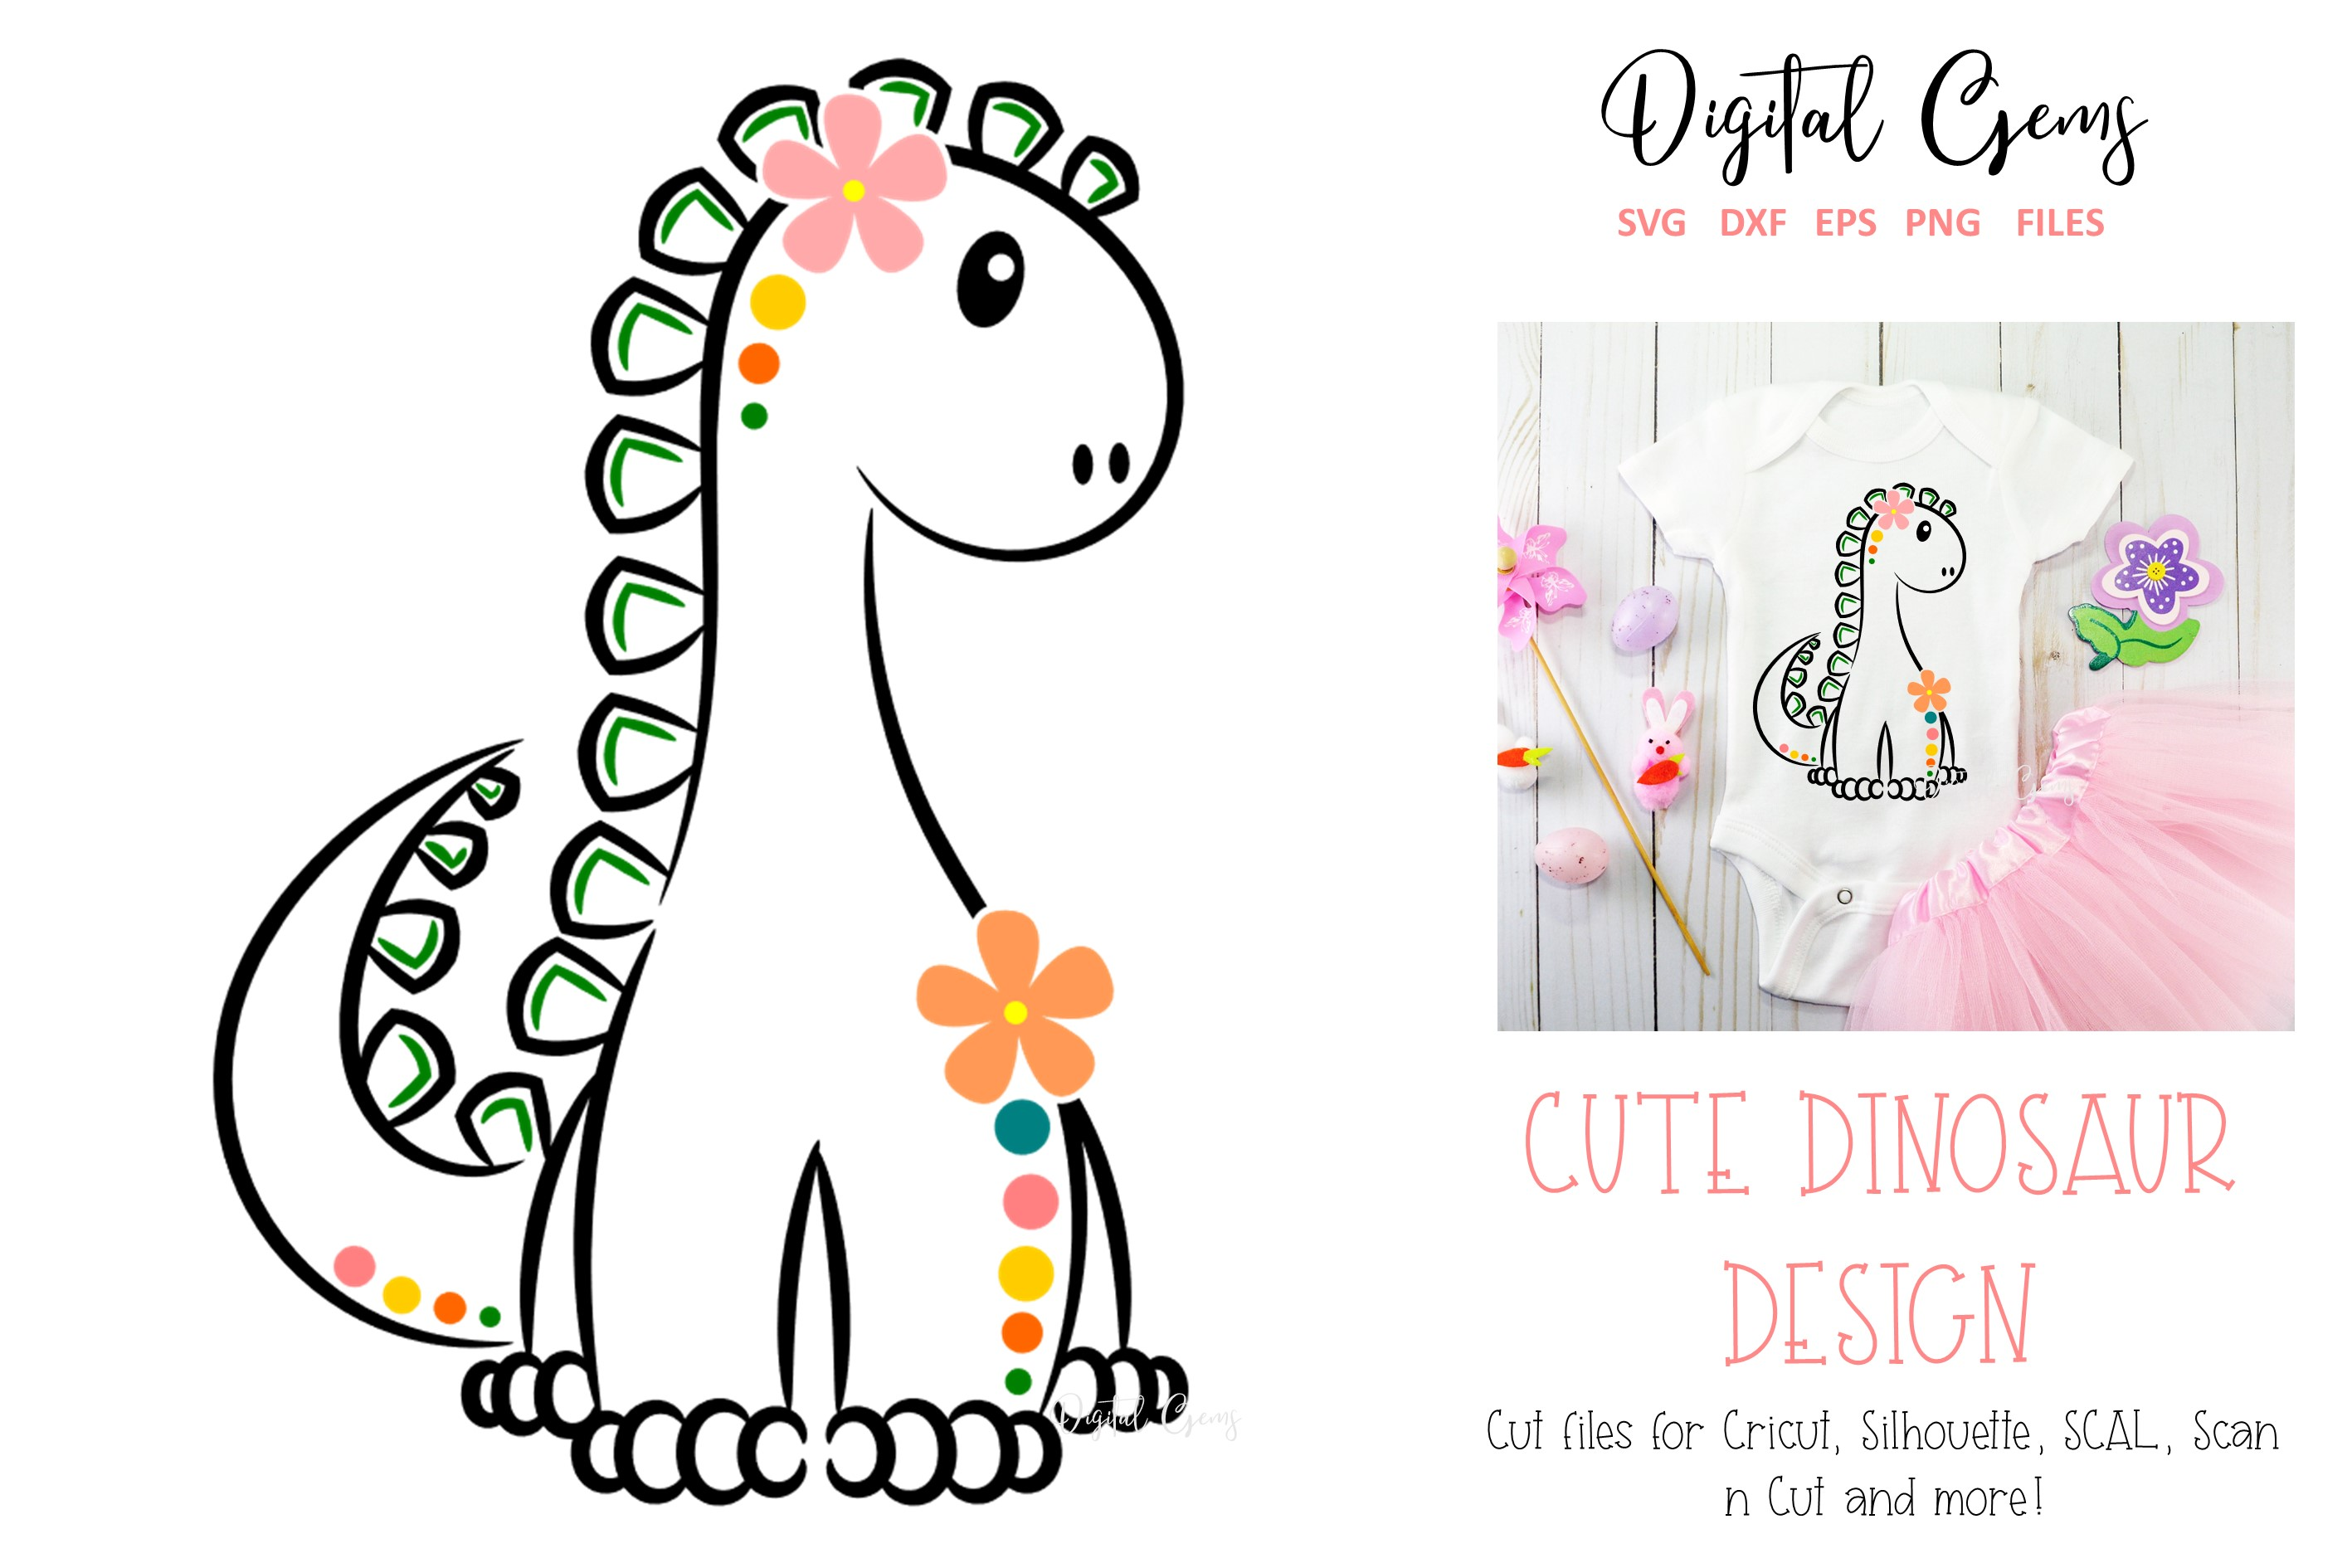 Download Free Cute Dinosaur Graphic By Digital Gems Creative Fabrica for Cricut Explore, Silhouette and other cutting machines.